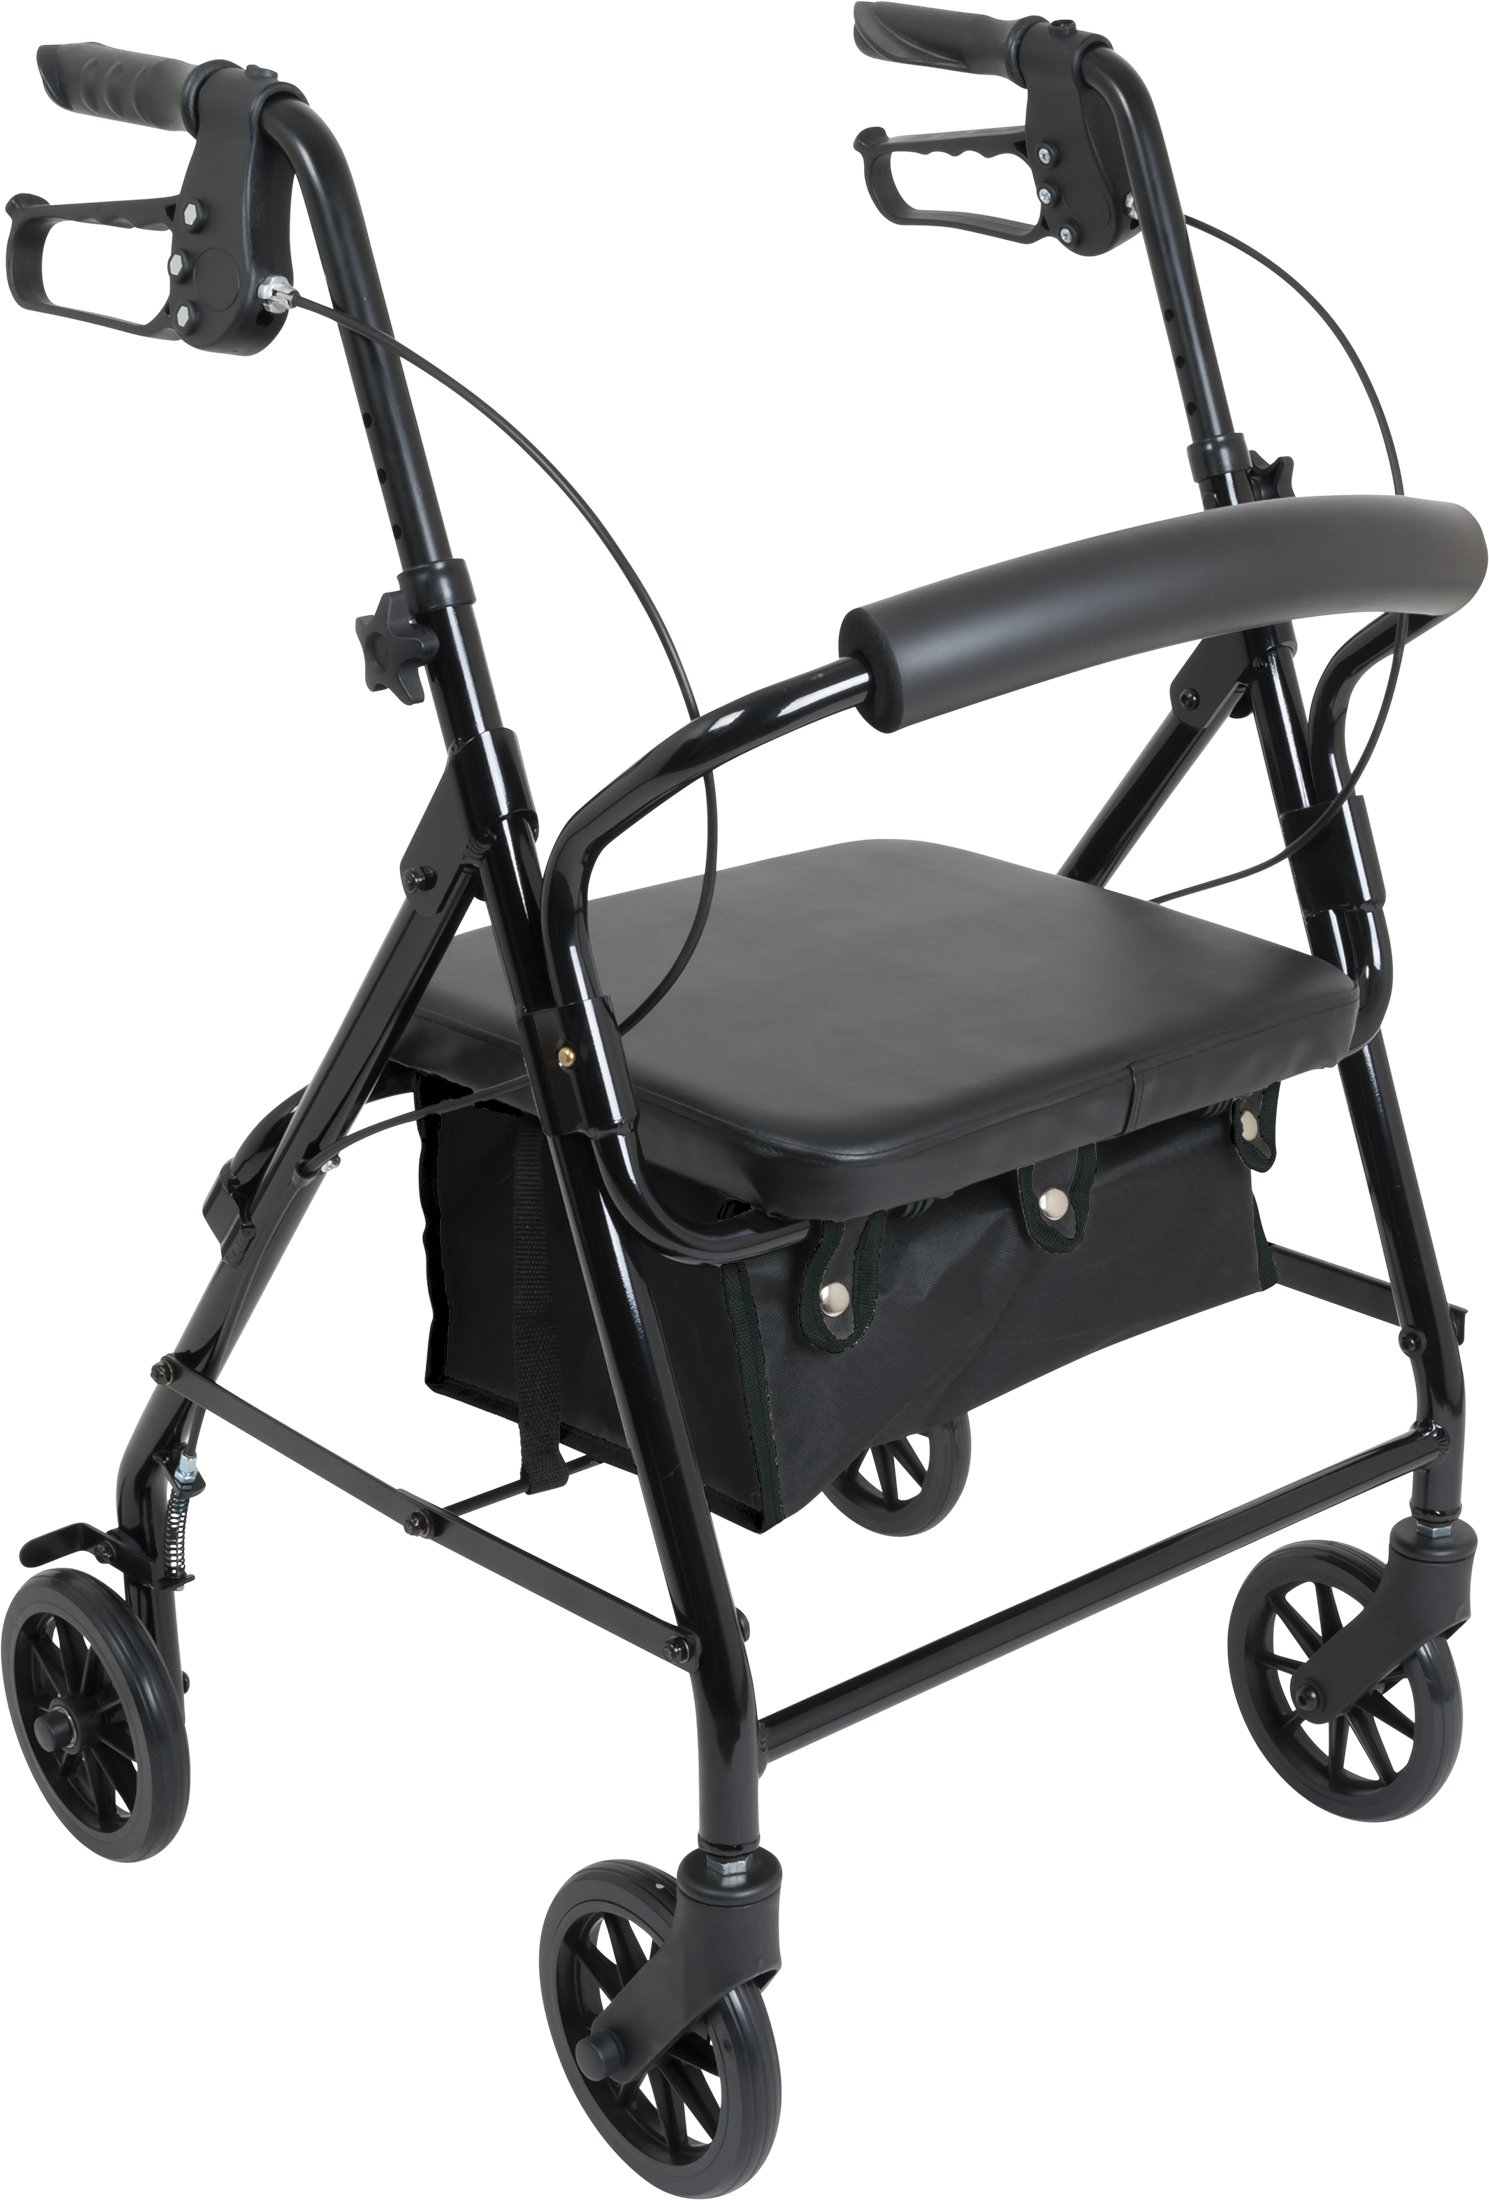 Probasics Aluminum Low Profile Rollator for Shorter Individuals, 6 in wheels, 250 Pound Weight Capacity, Black